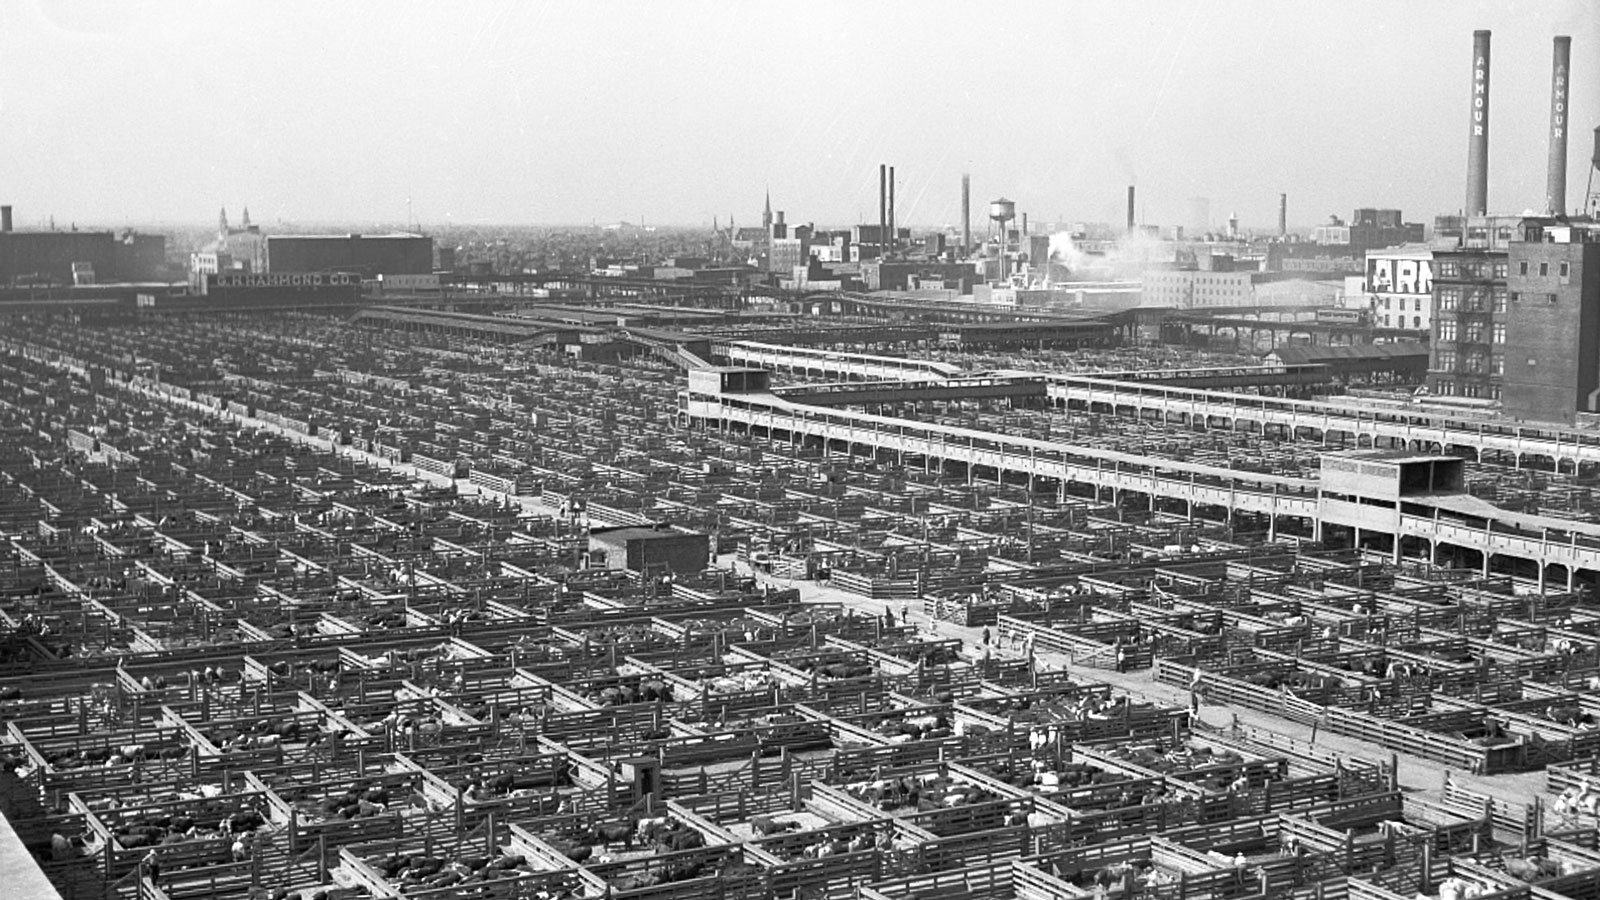 Union Stock Yards historical photo